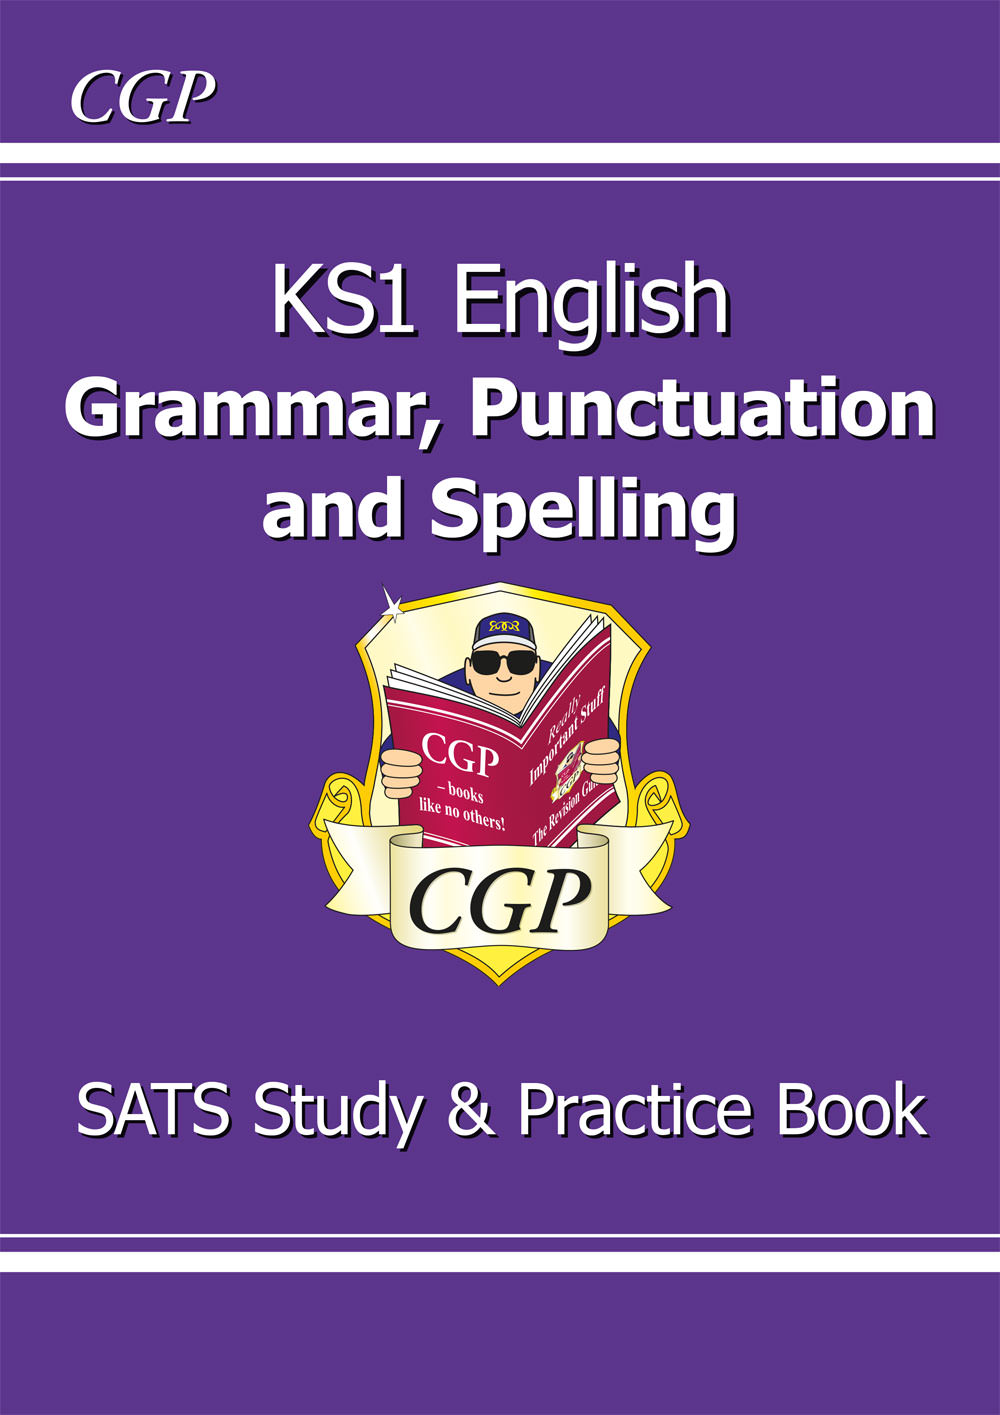 EGR11 - KS1 English Grammar, Punctuation & Spelling Study & Practice Book